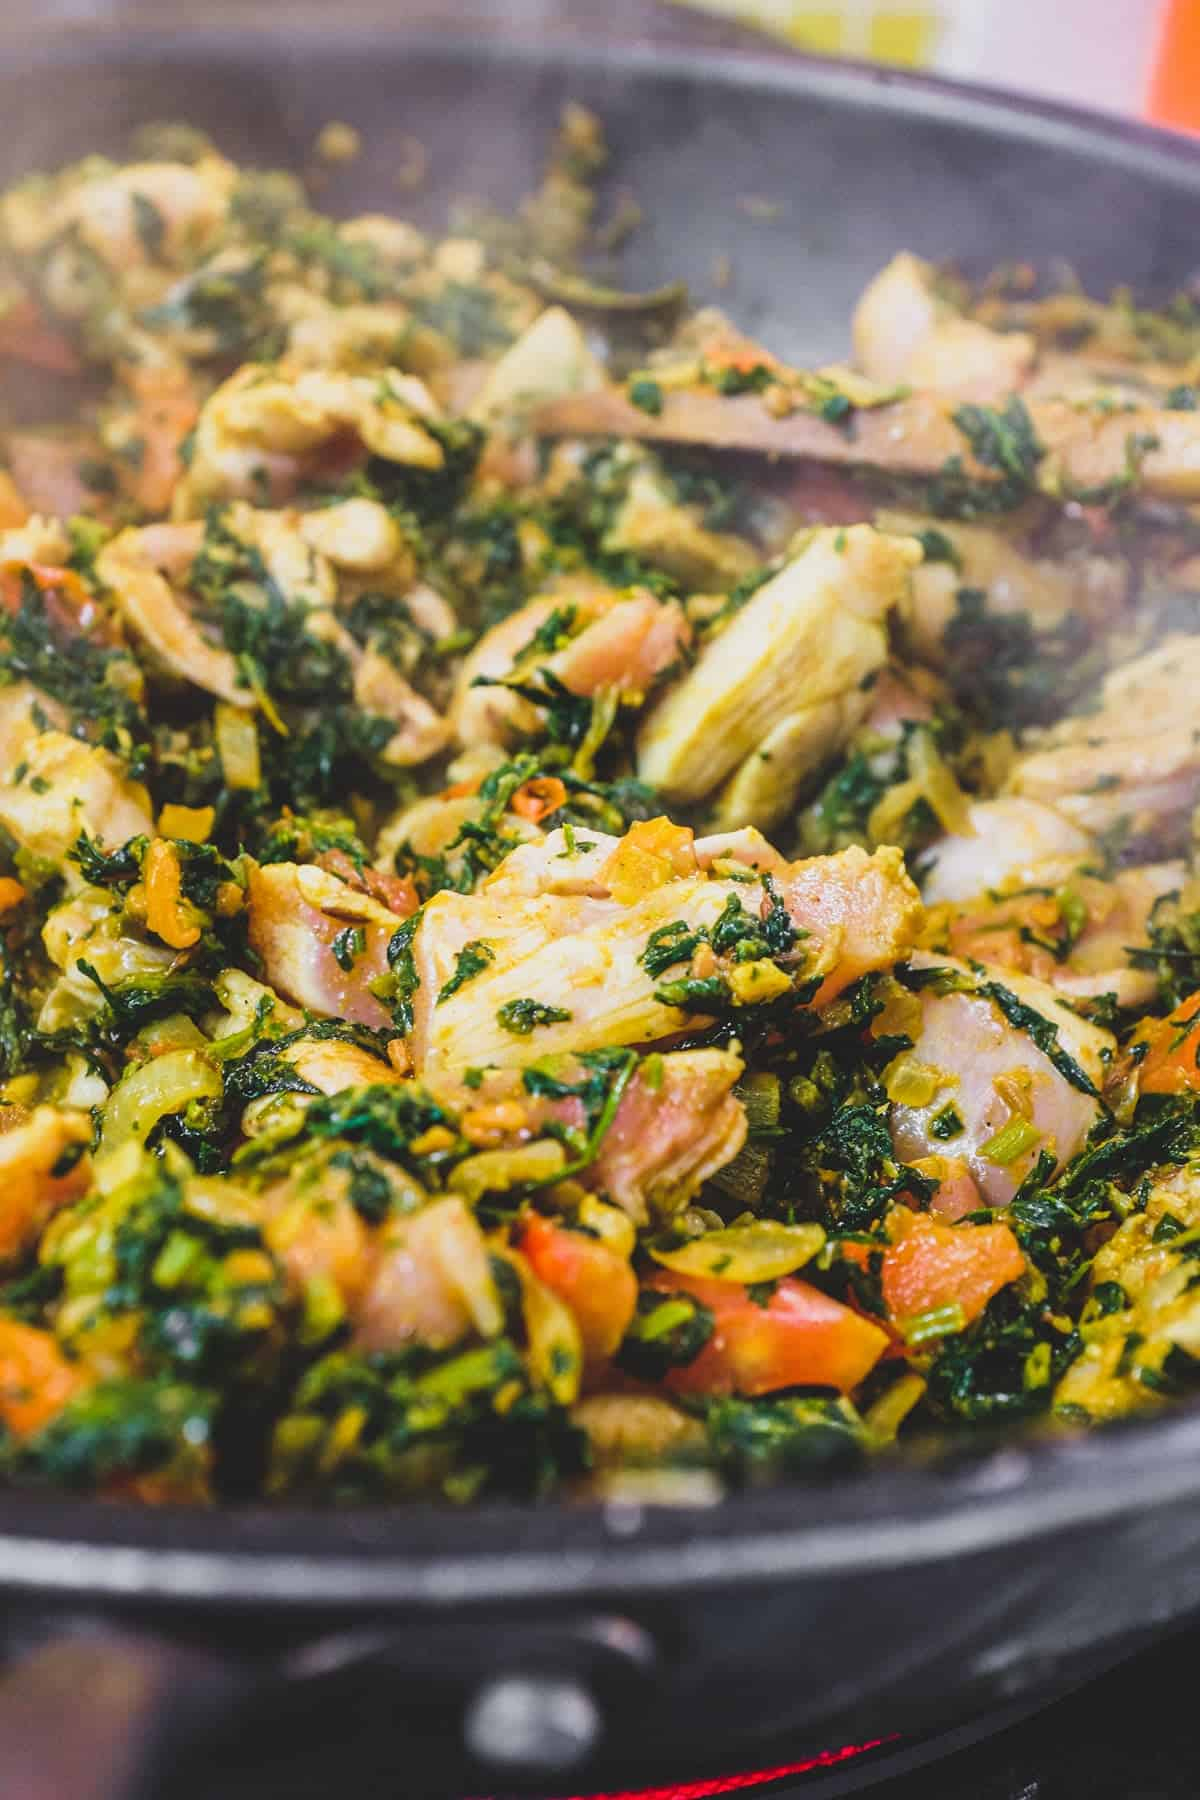 A pan with chicken curry made with fenugreek leaves